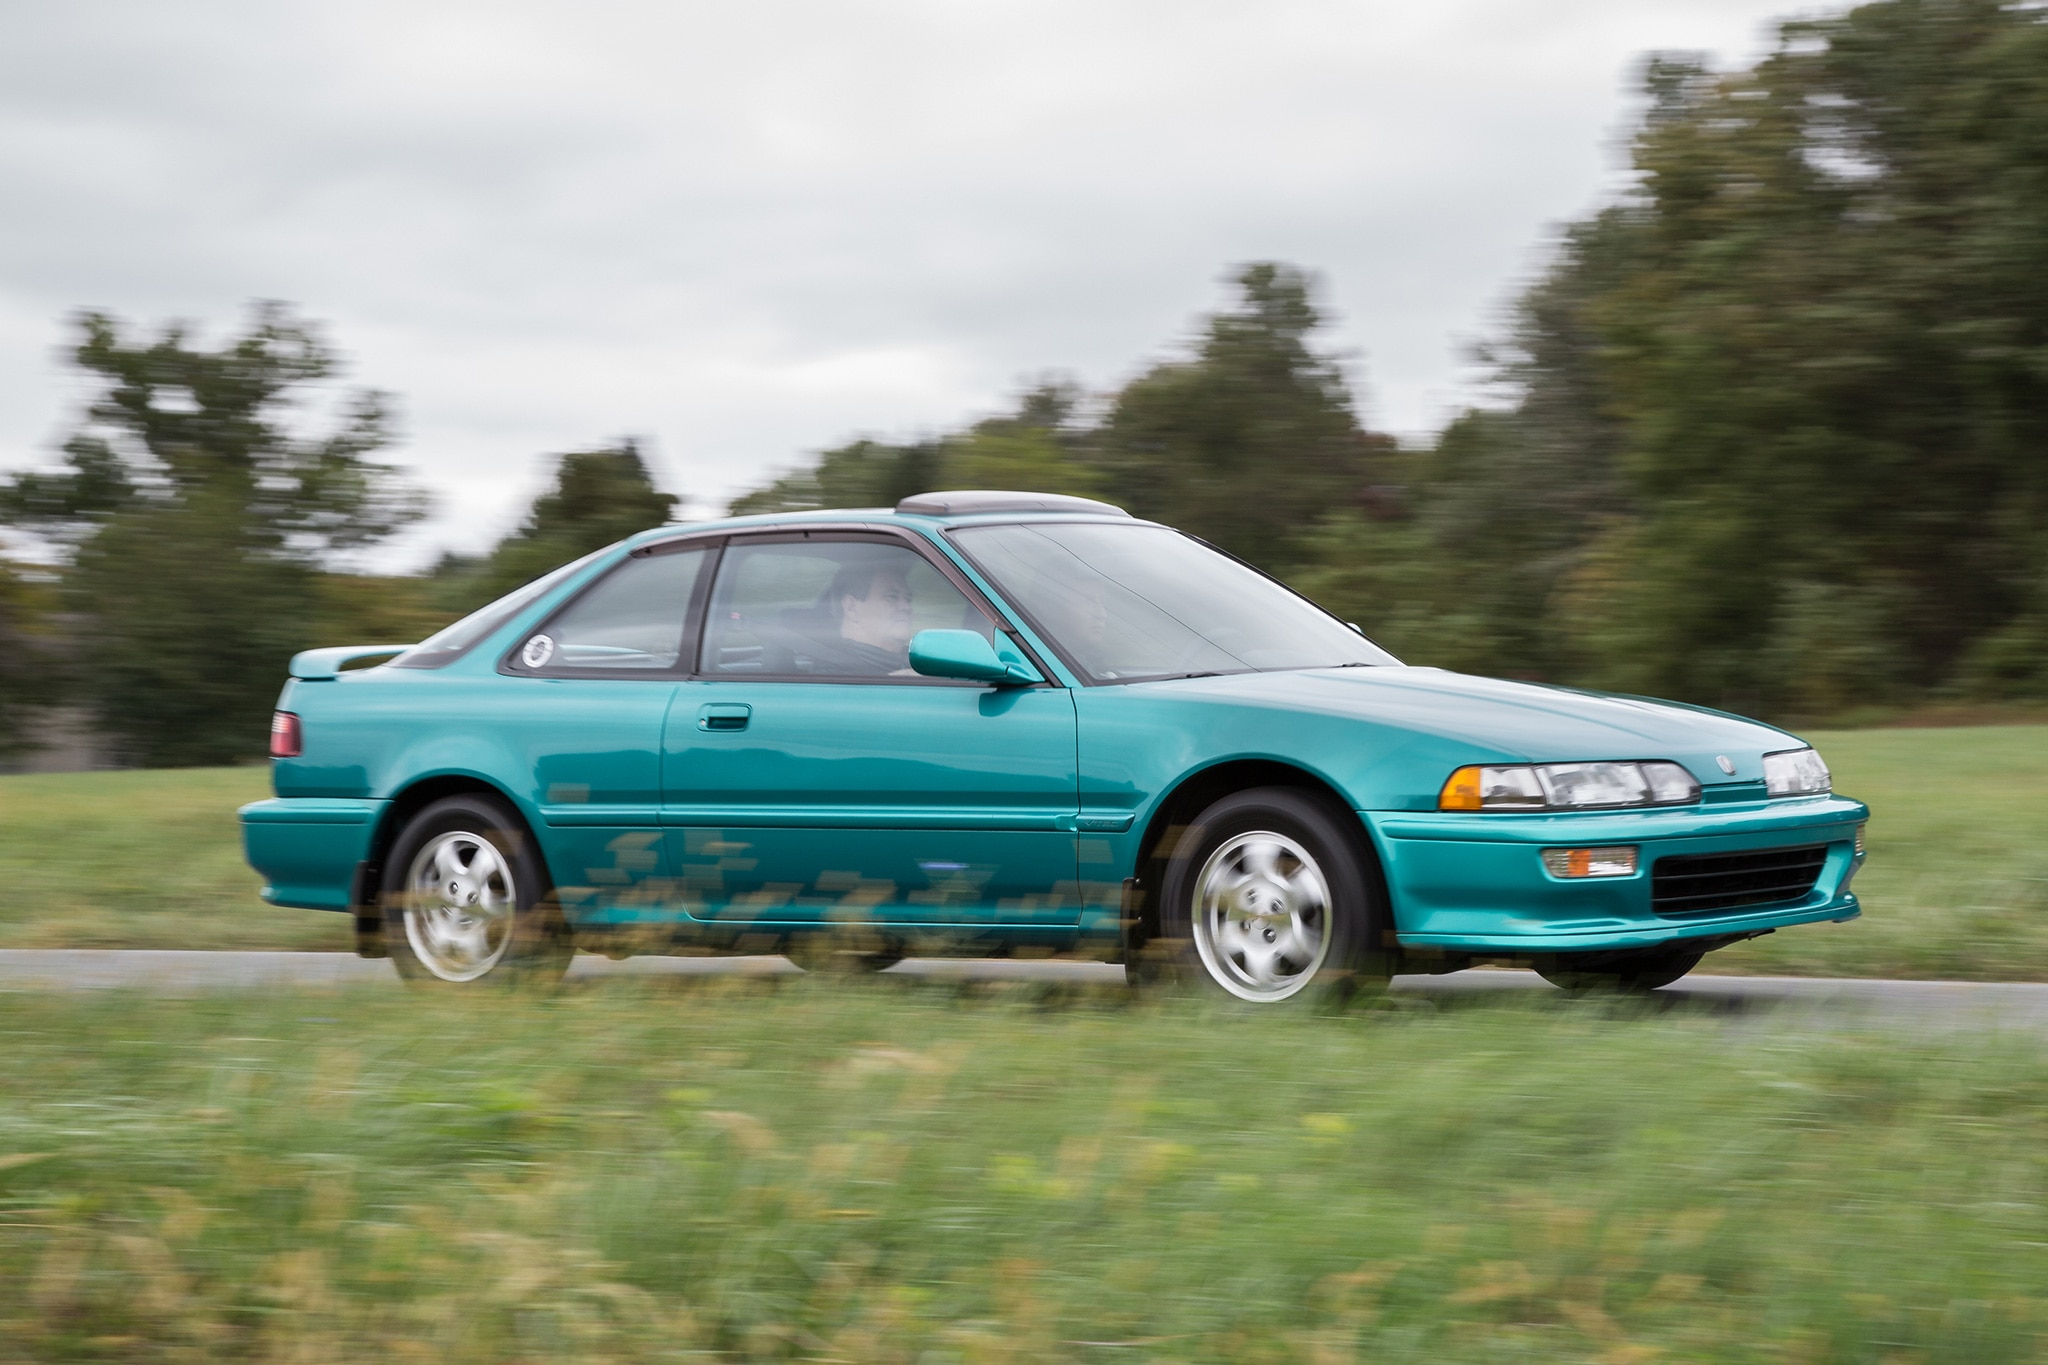 Collectible Classic 1992 1993 Acura Integra Gs R in addition Showthread besides 150840 1988 Mustang 5 0 Wiring Diagrams besides 1990 Acura Integra furthermore Collectible Classic 1992 1993 Acura Integra Gs R. on 1990 acura integra gs